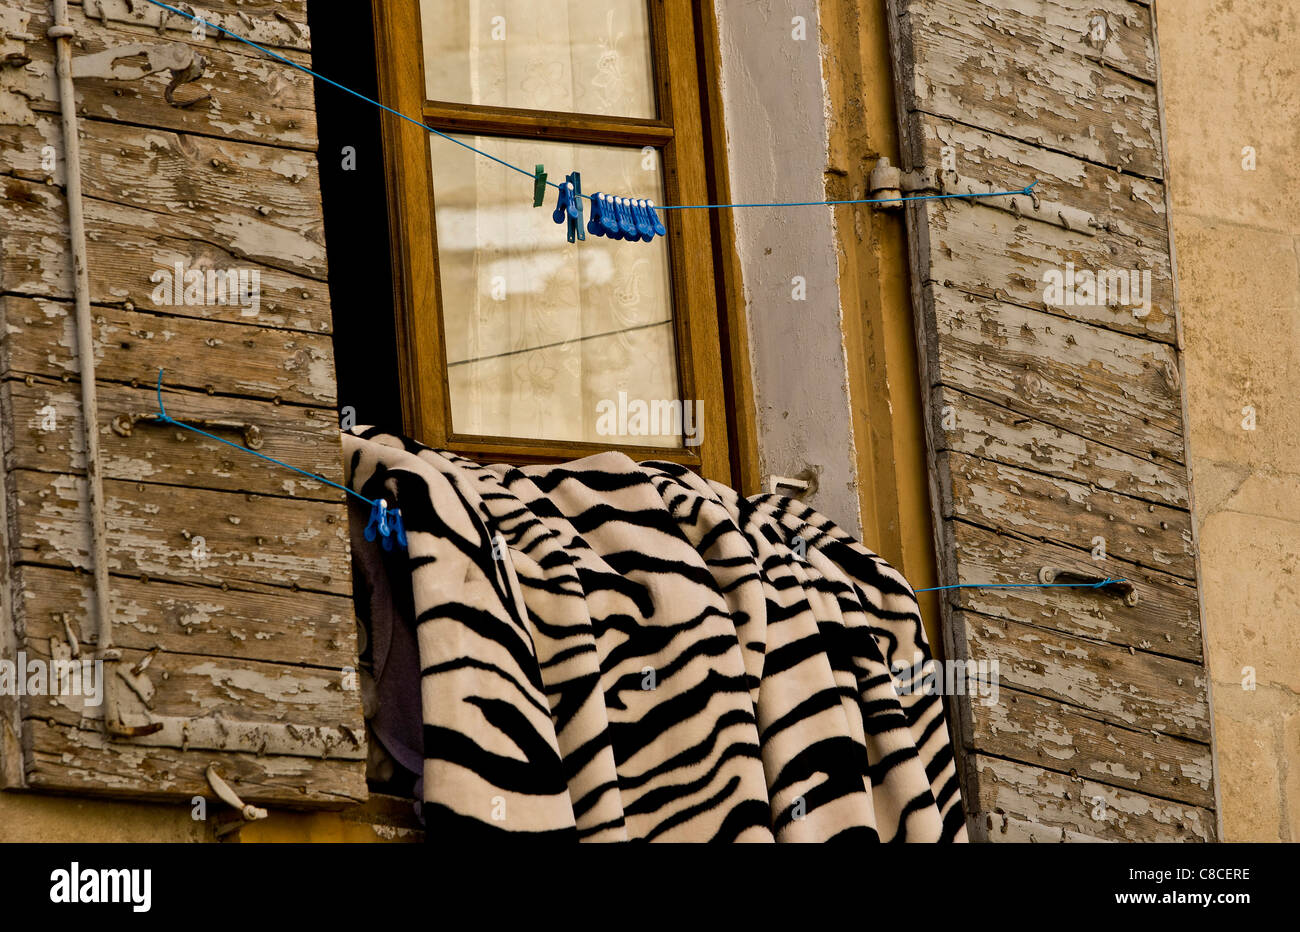 Bedding airs on a balcony of apartment in the middle of Arles, Camargue,  France - Stock Image